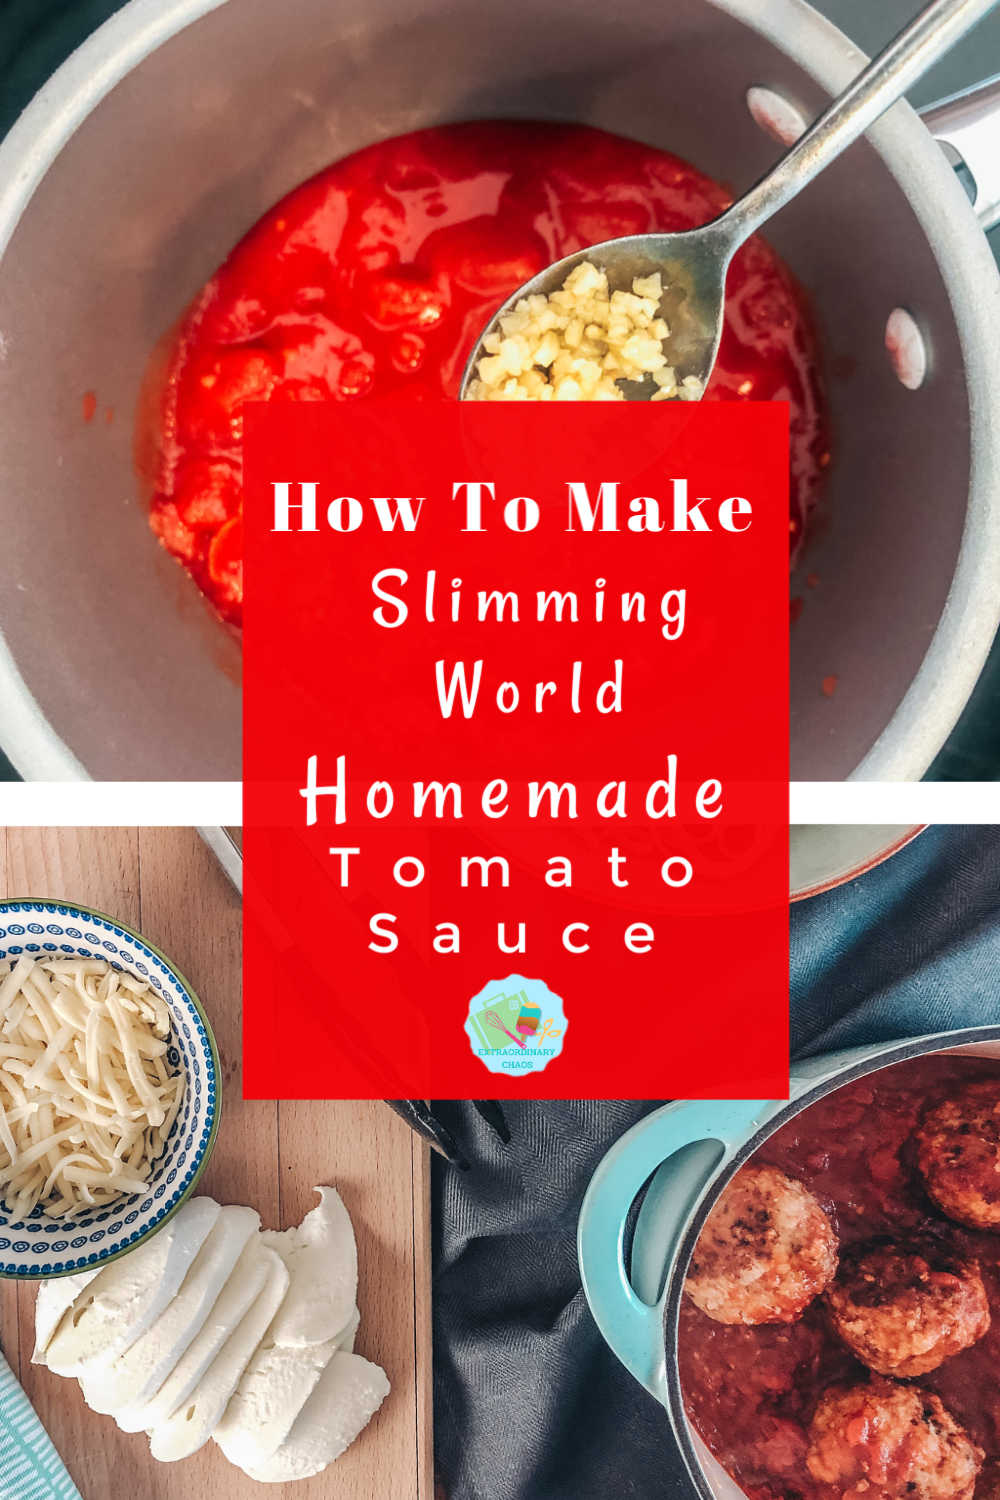 How to make a quick and easy slimming world Italian Tomato Sauce, perfect for making in batch and freezing which makes midweek meals so easy.